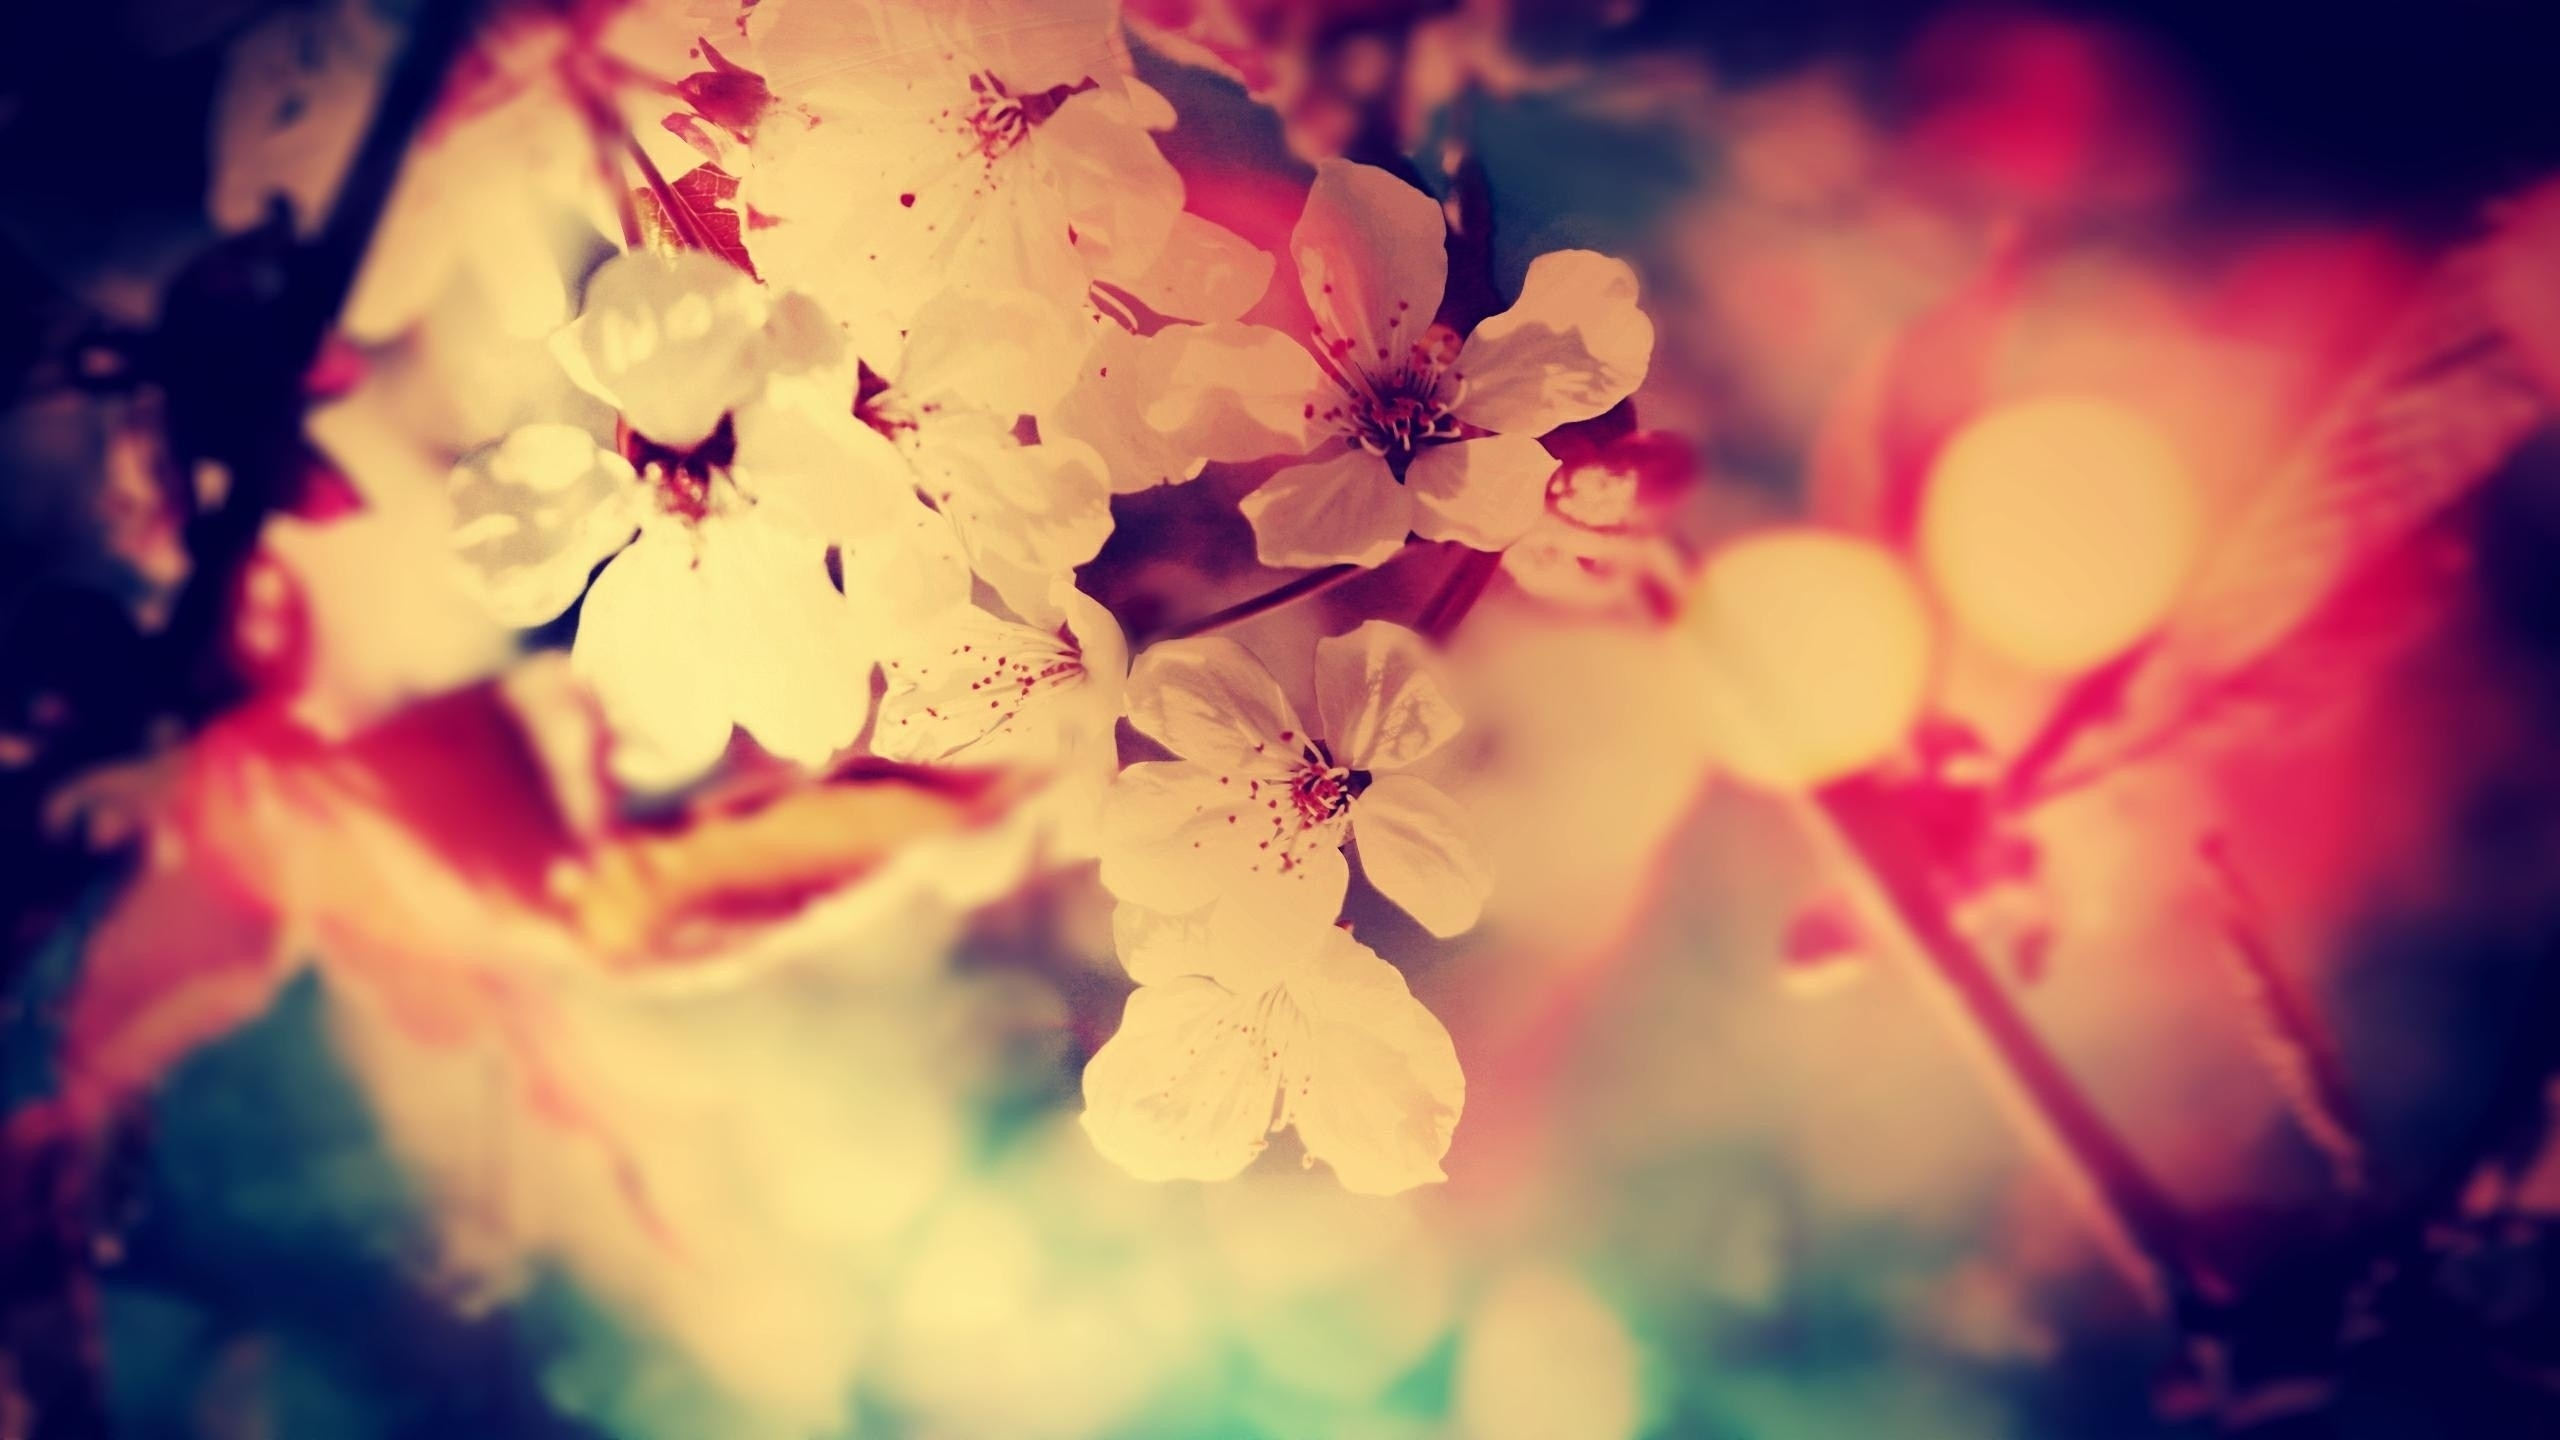 Fall Wallpaper For Desktop Background Cherry Blossom Backgrounds Pixelstalk Net